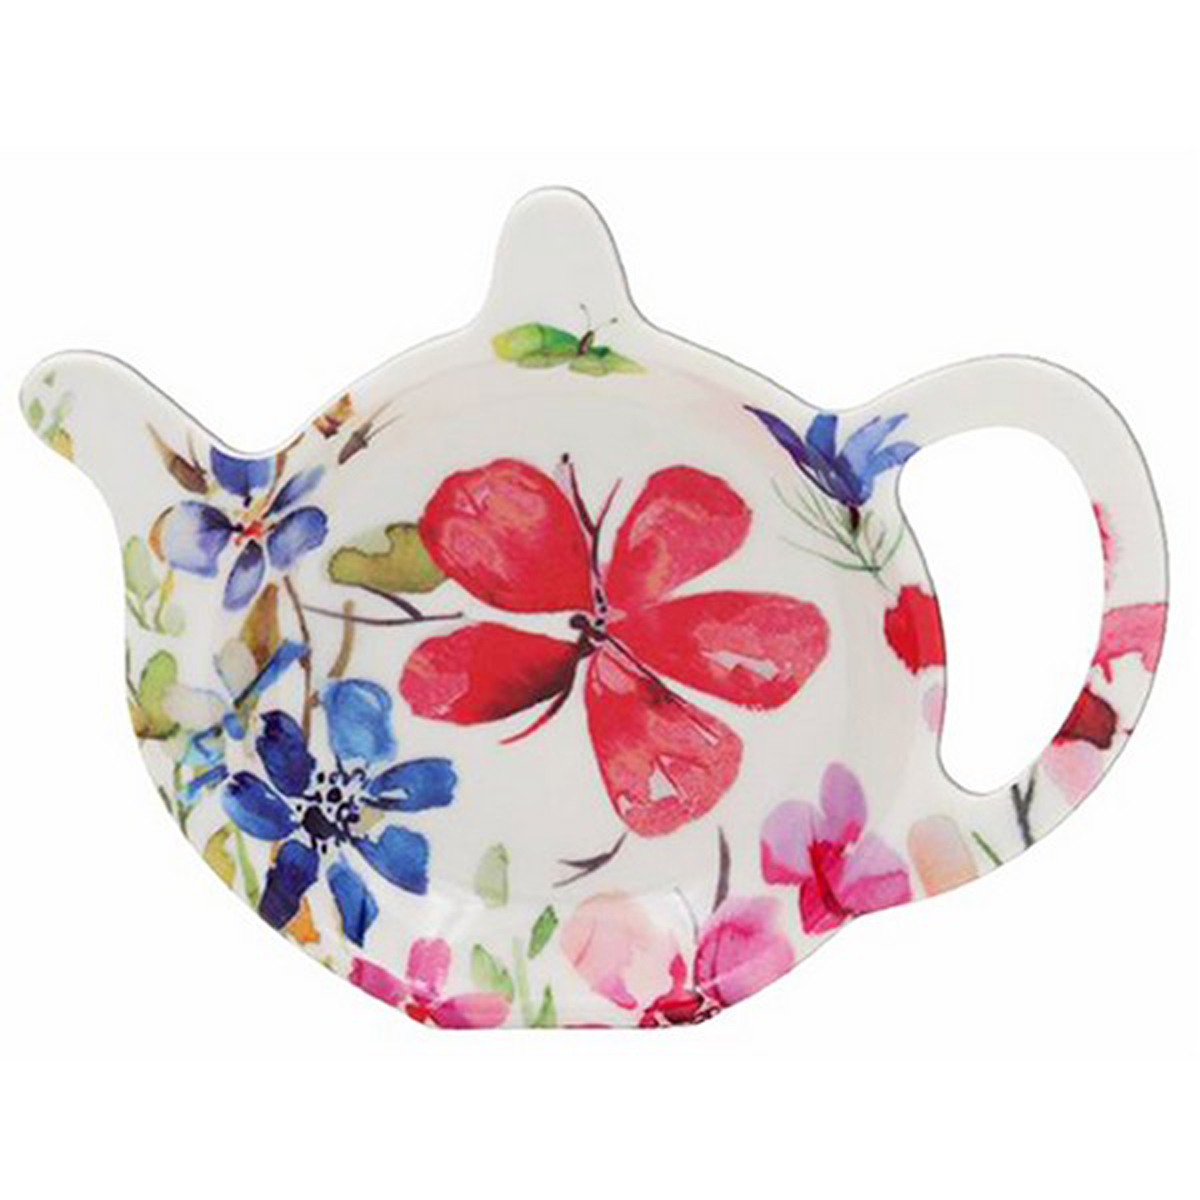 Repose sachets \'Butterfly Meadow\' multicolore - 12x98 cm - [R2696]